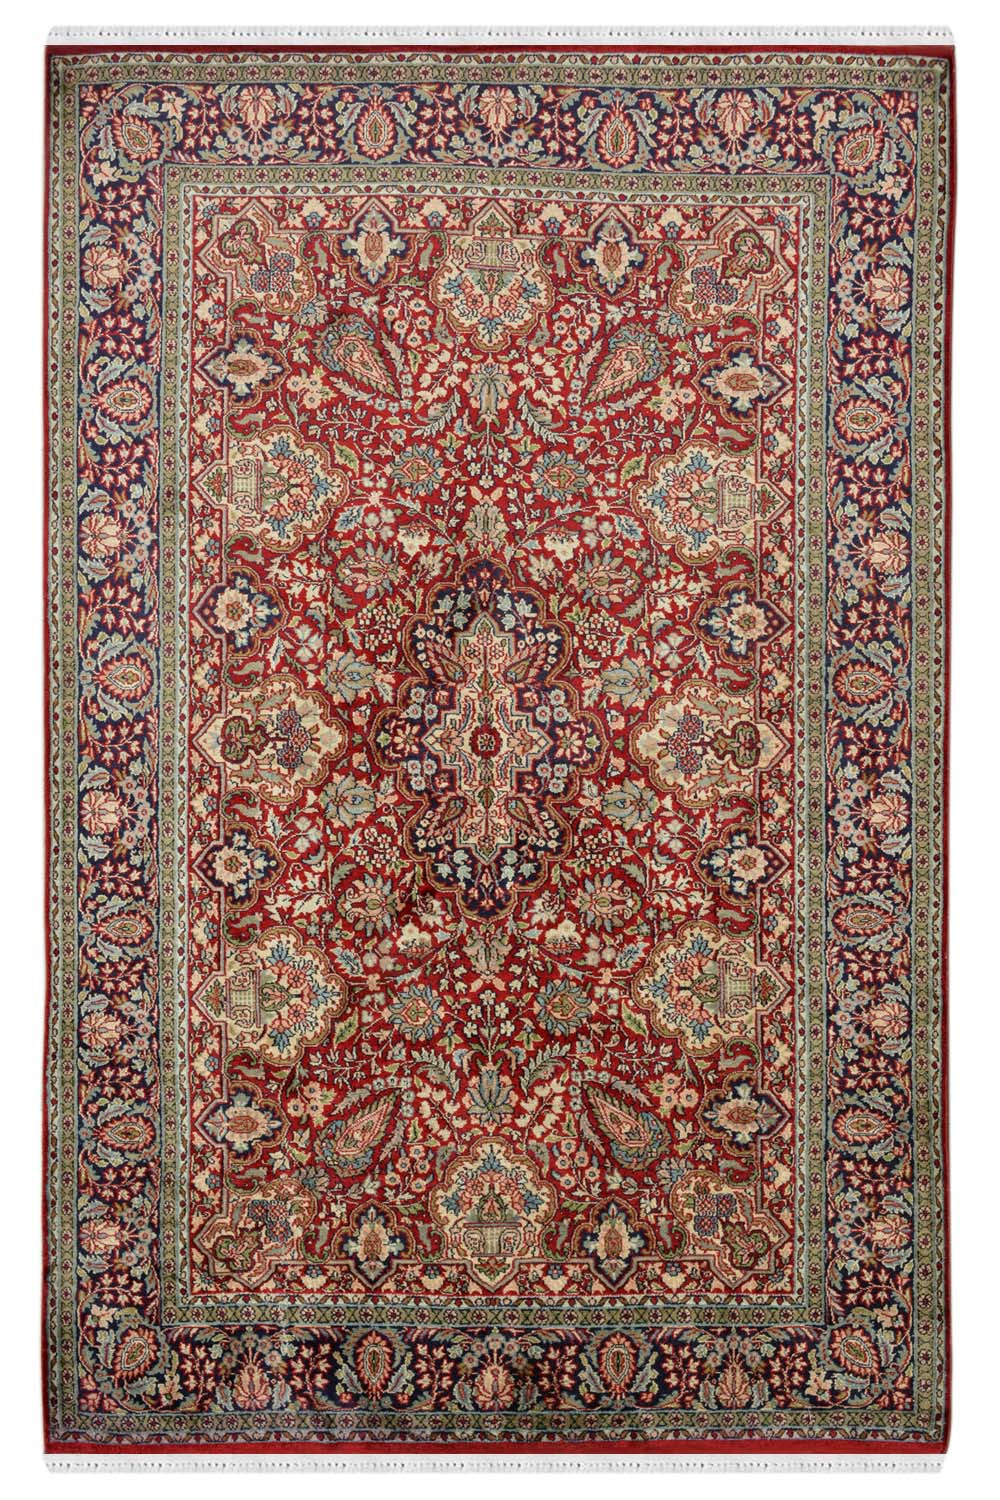 Kashan Motifs Silk Rugs For Sale Online Only At Rugs And